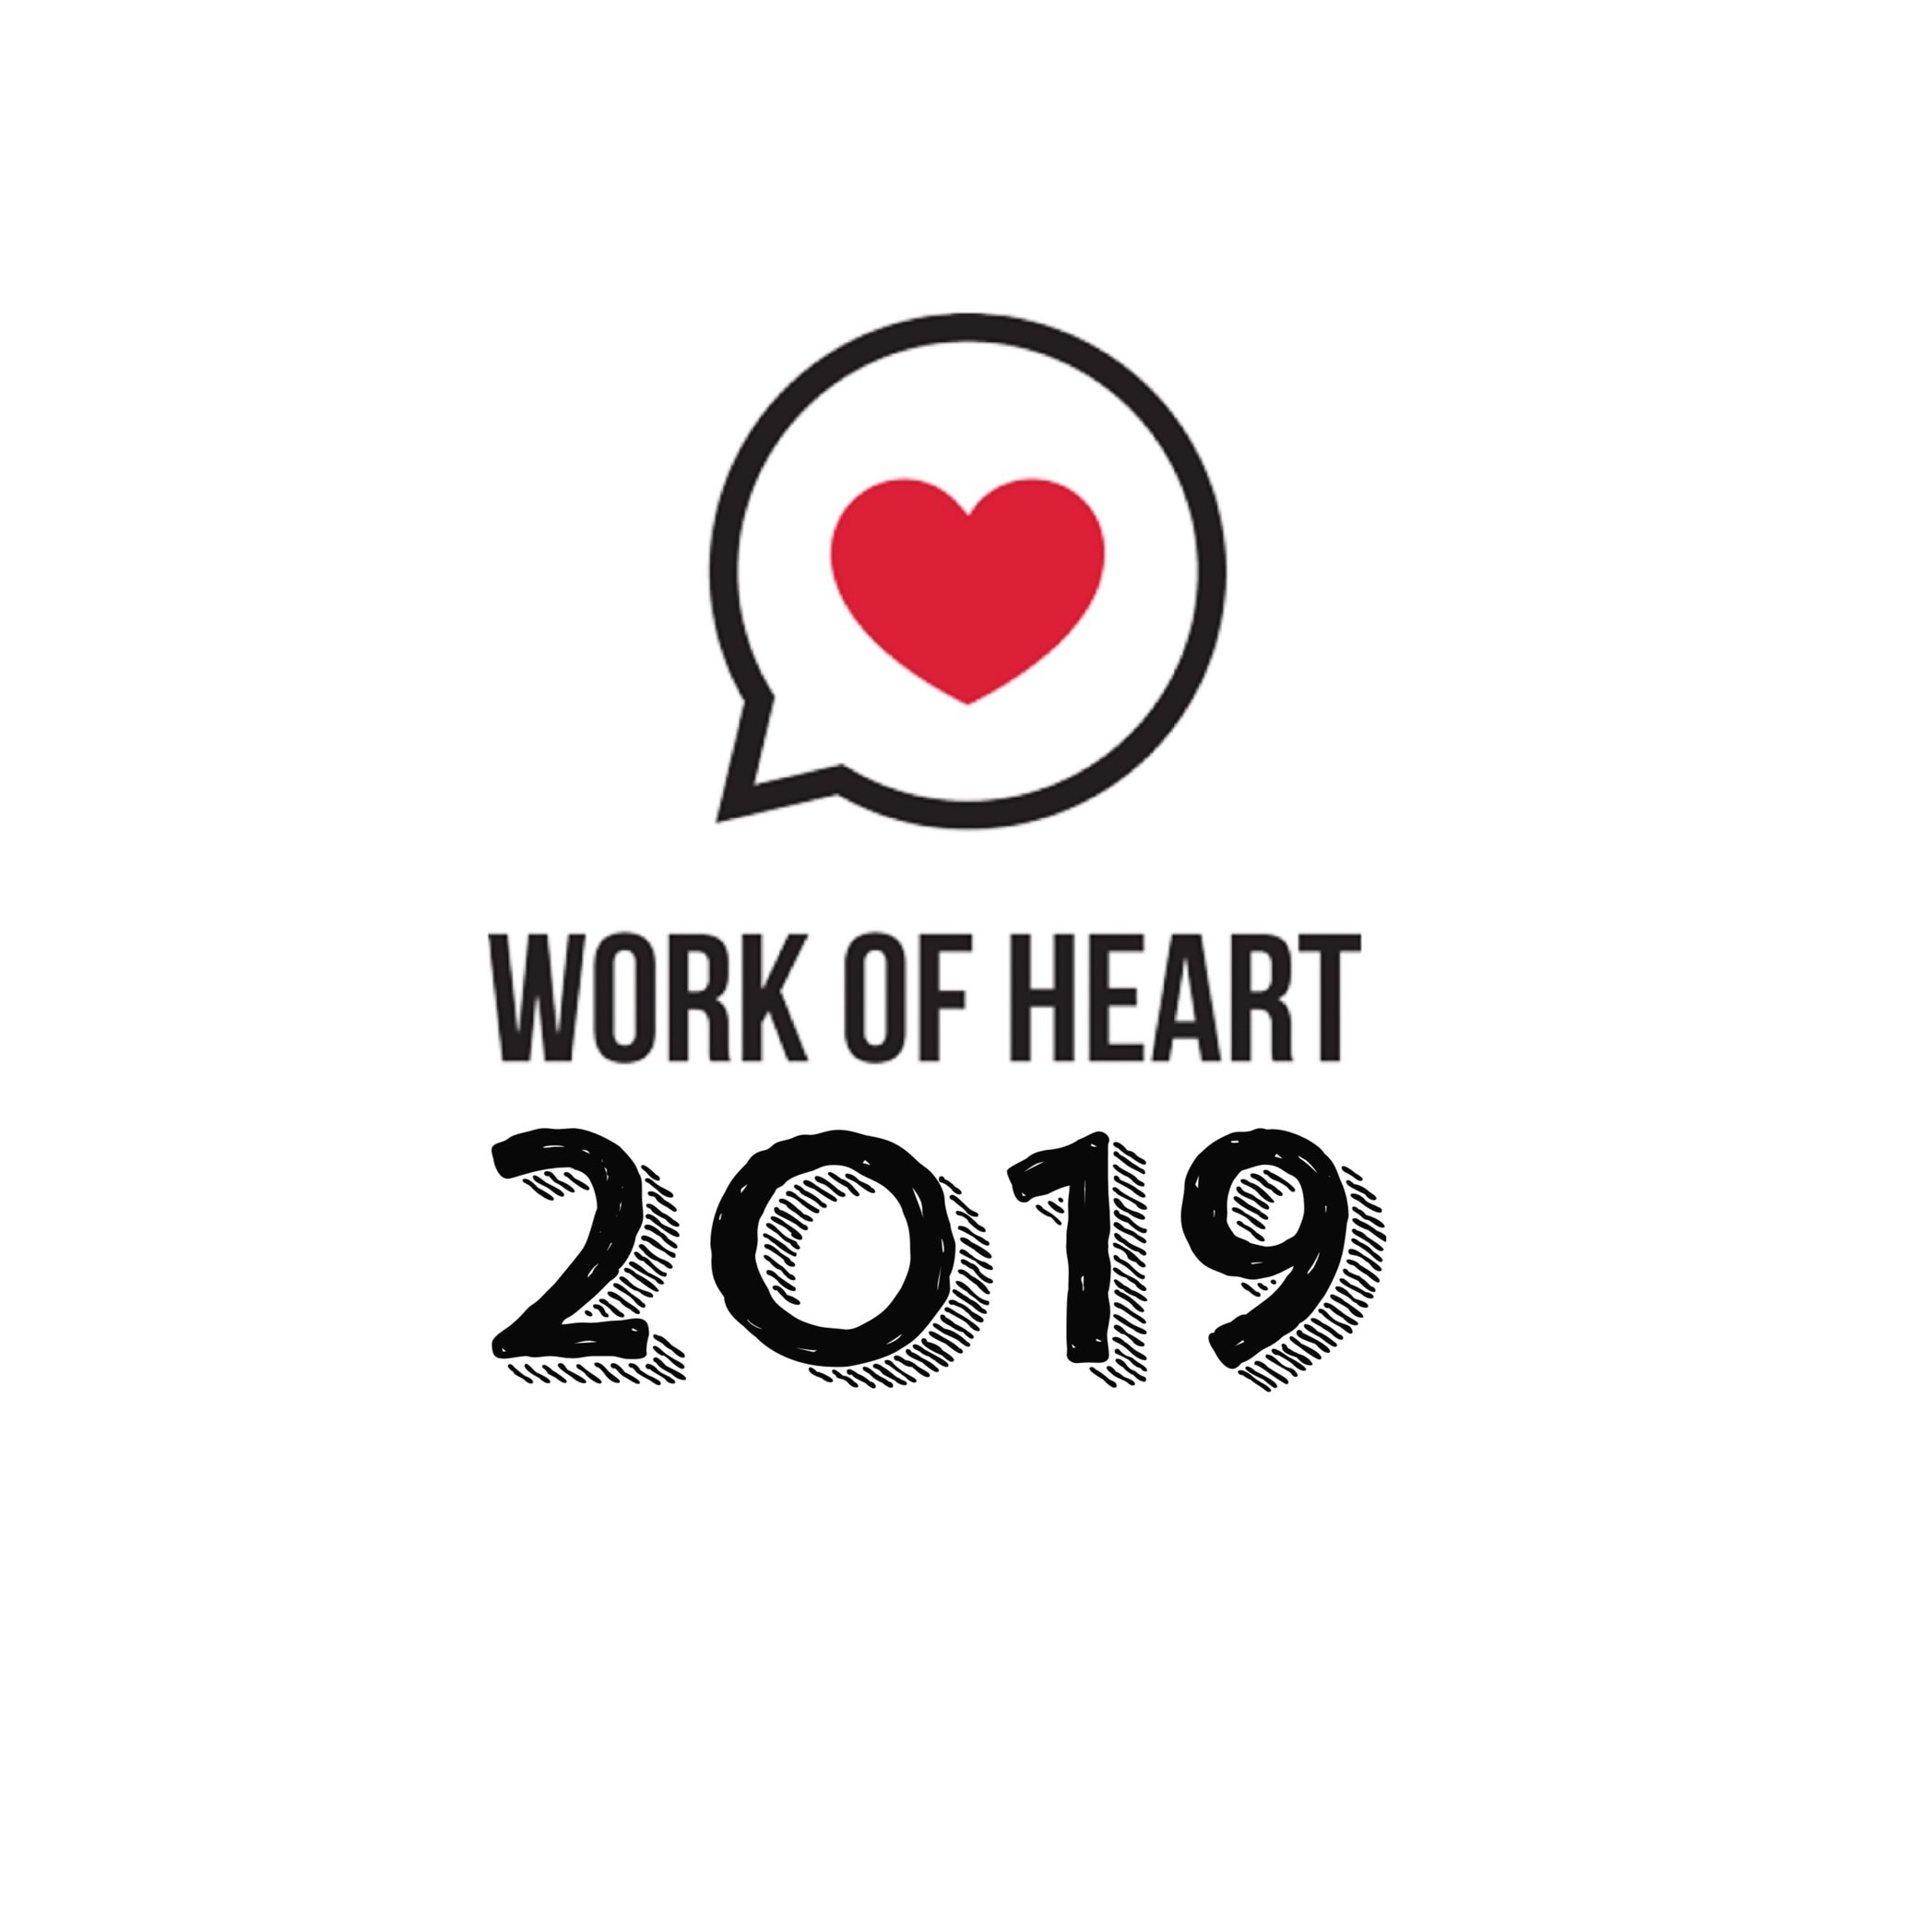 WORK OF HEART 2019